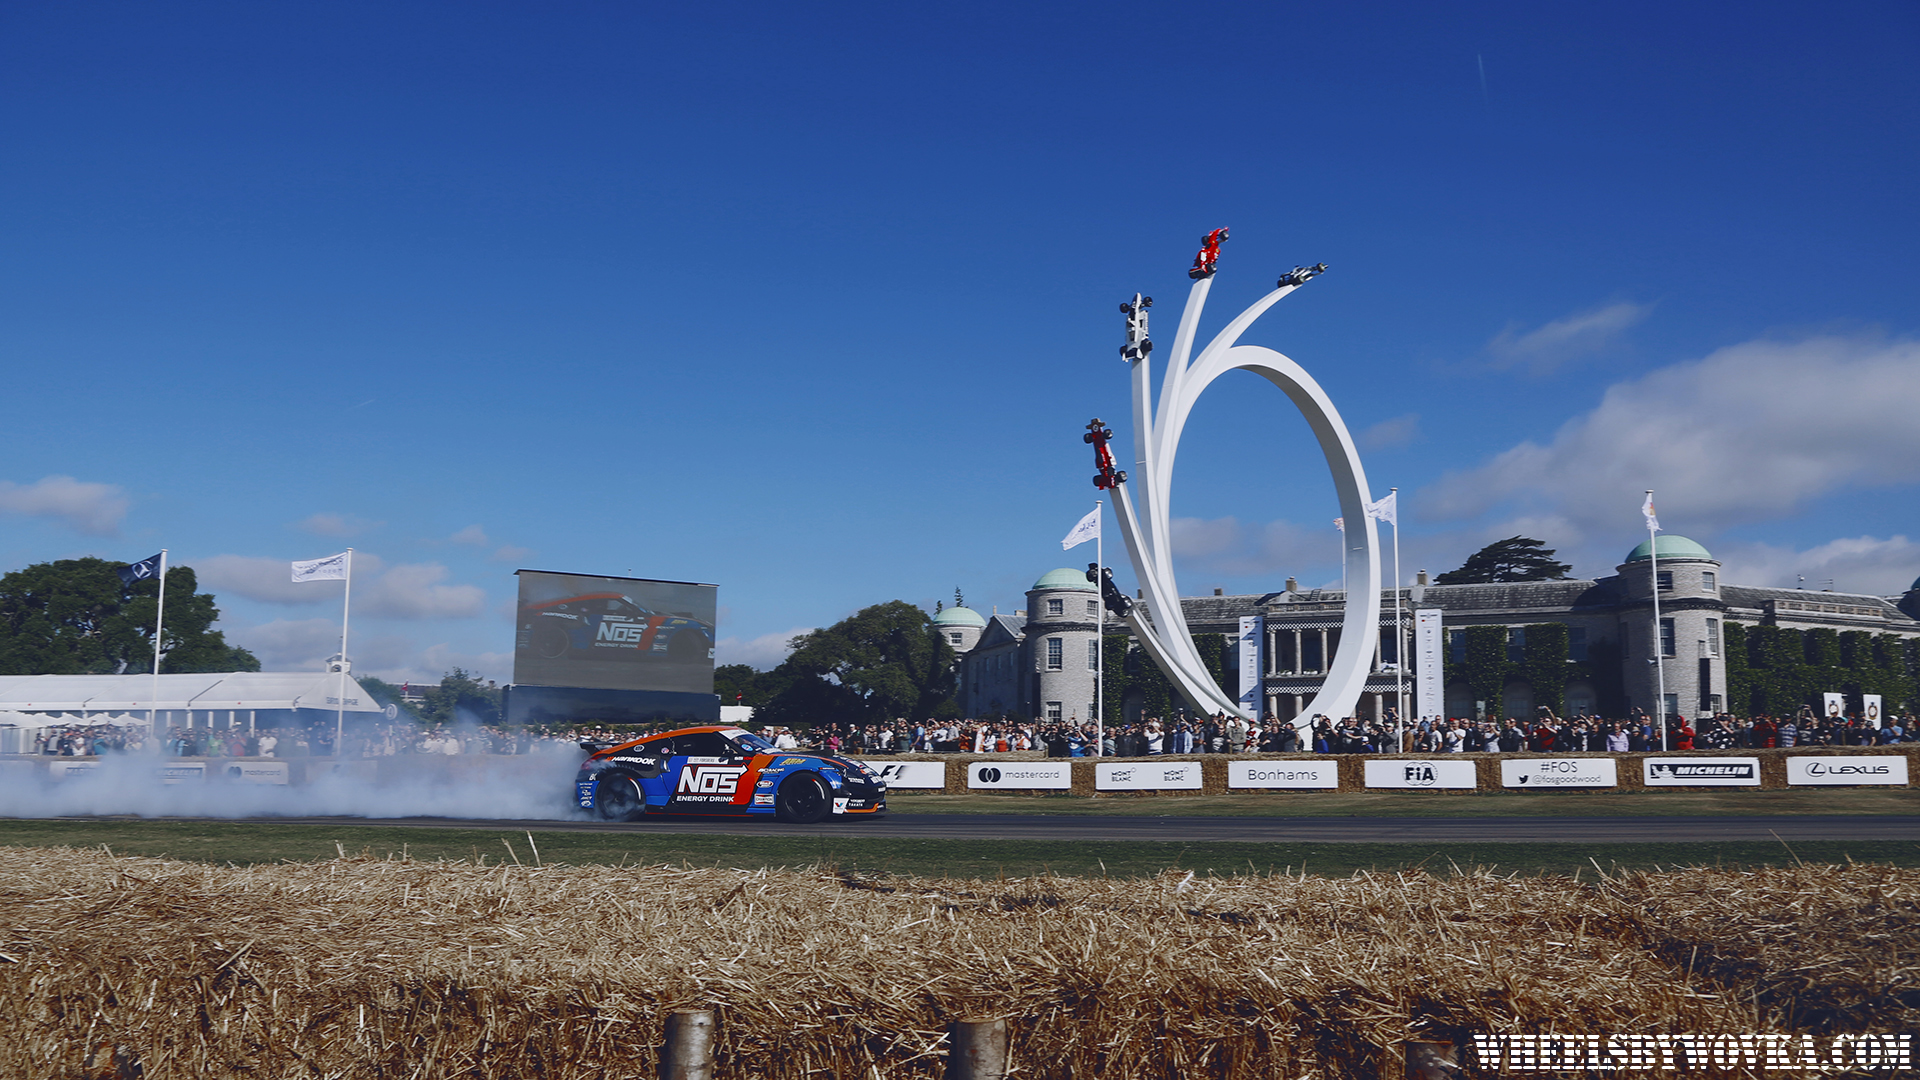 drifting-at-goodwood-festival-of-speed-by-wheelsbywovka-19